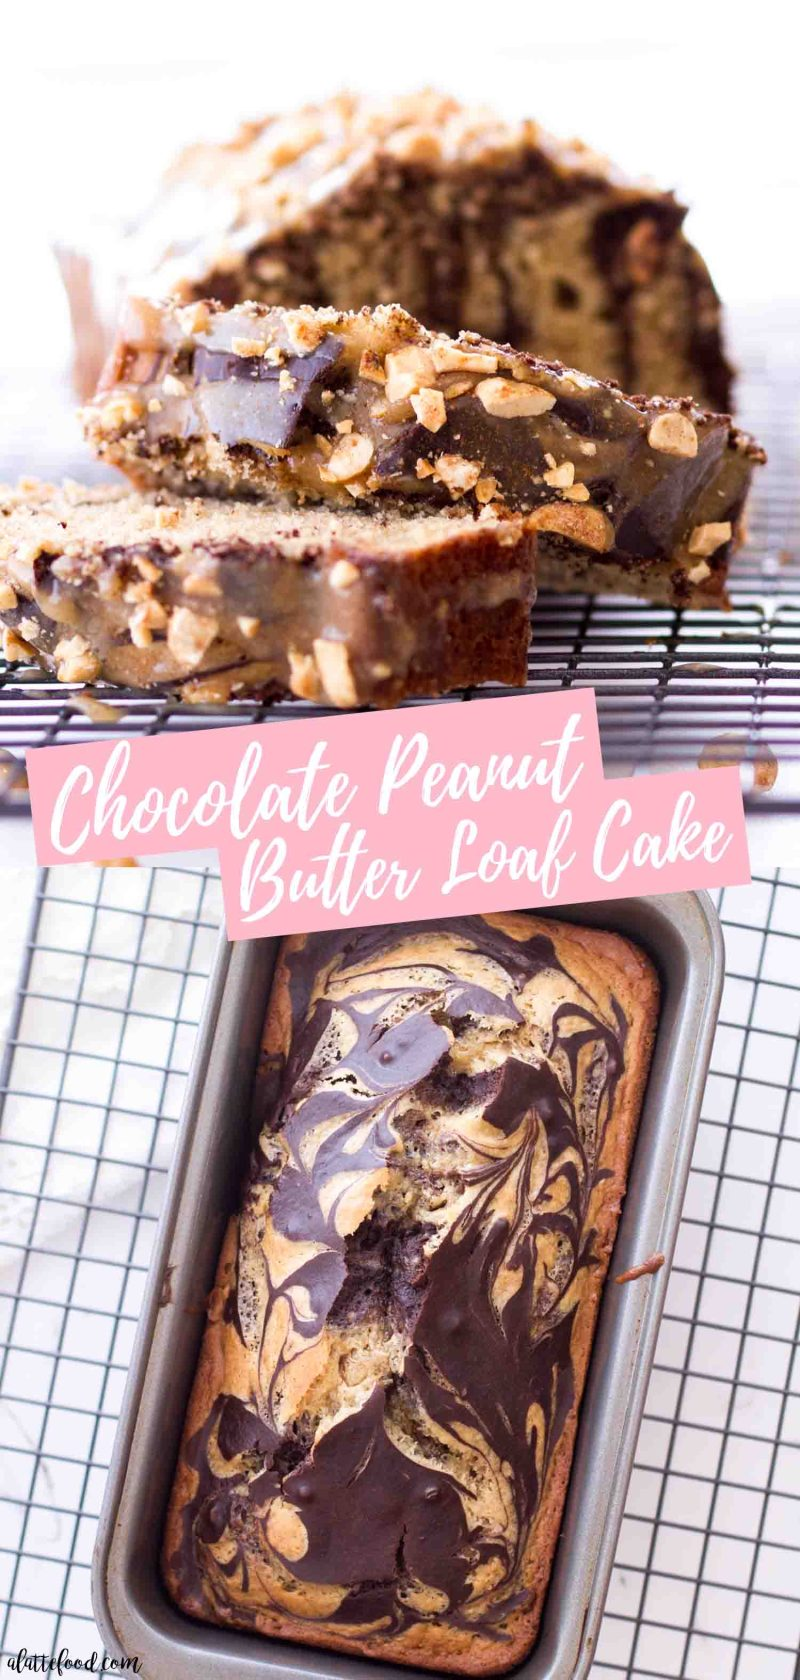 Marble Chocolate Peanut Butter Loaf Cake with a homemade peanut butter glaze